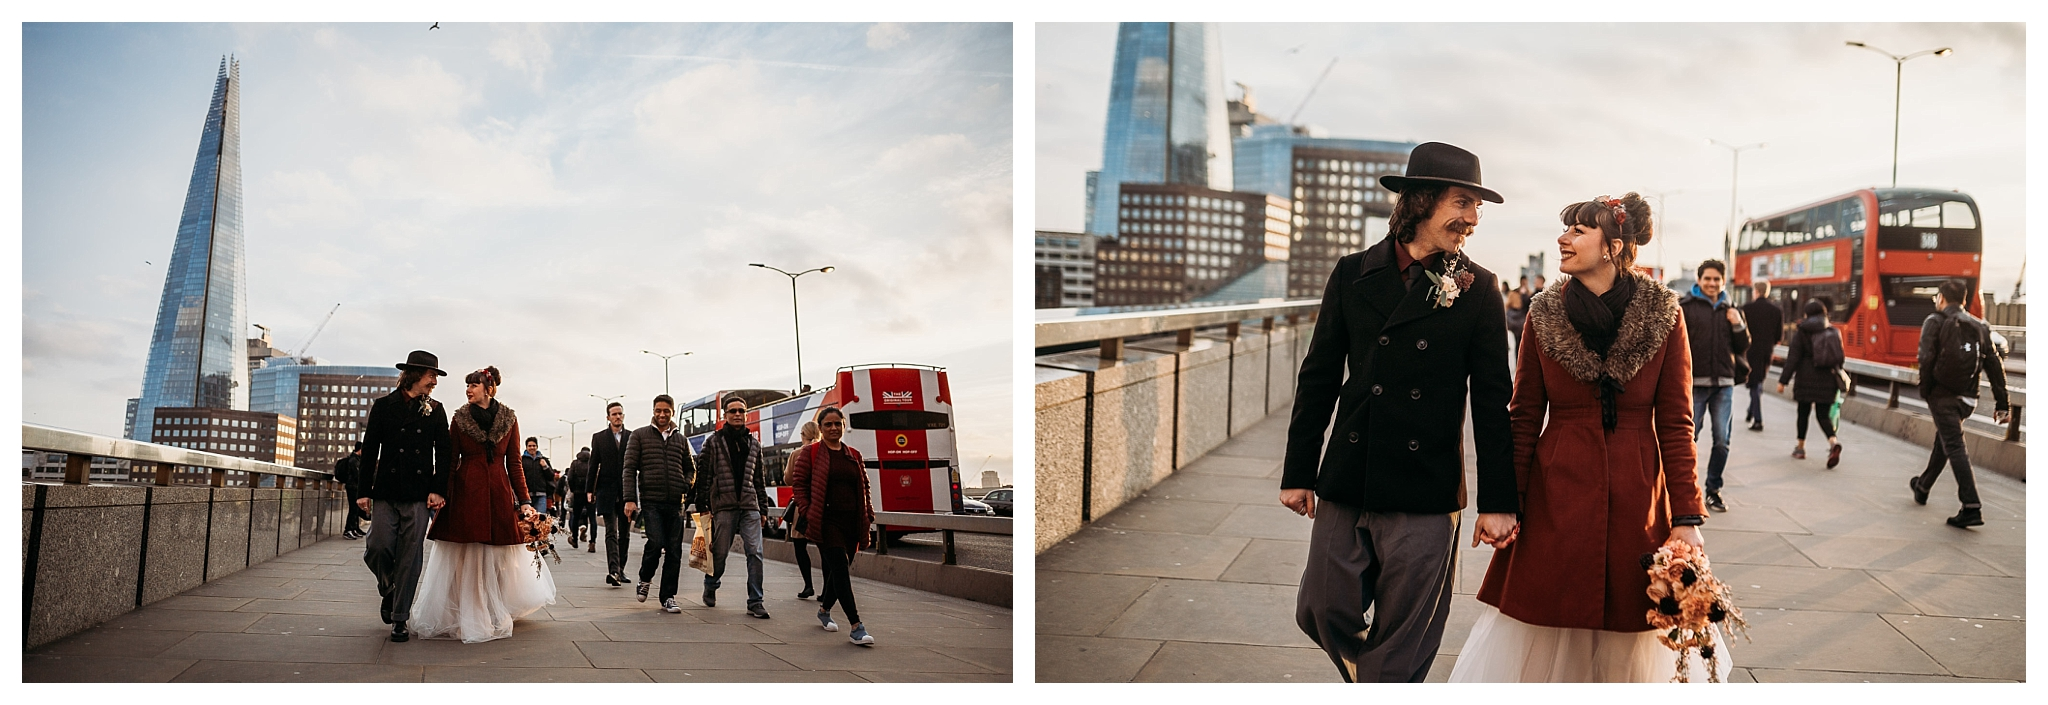 Bride and groom walking by the London Bridge at sunset